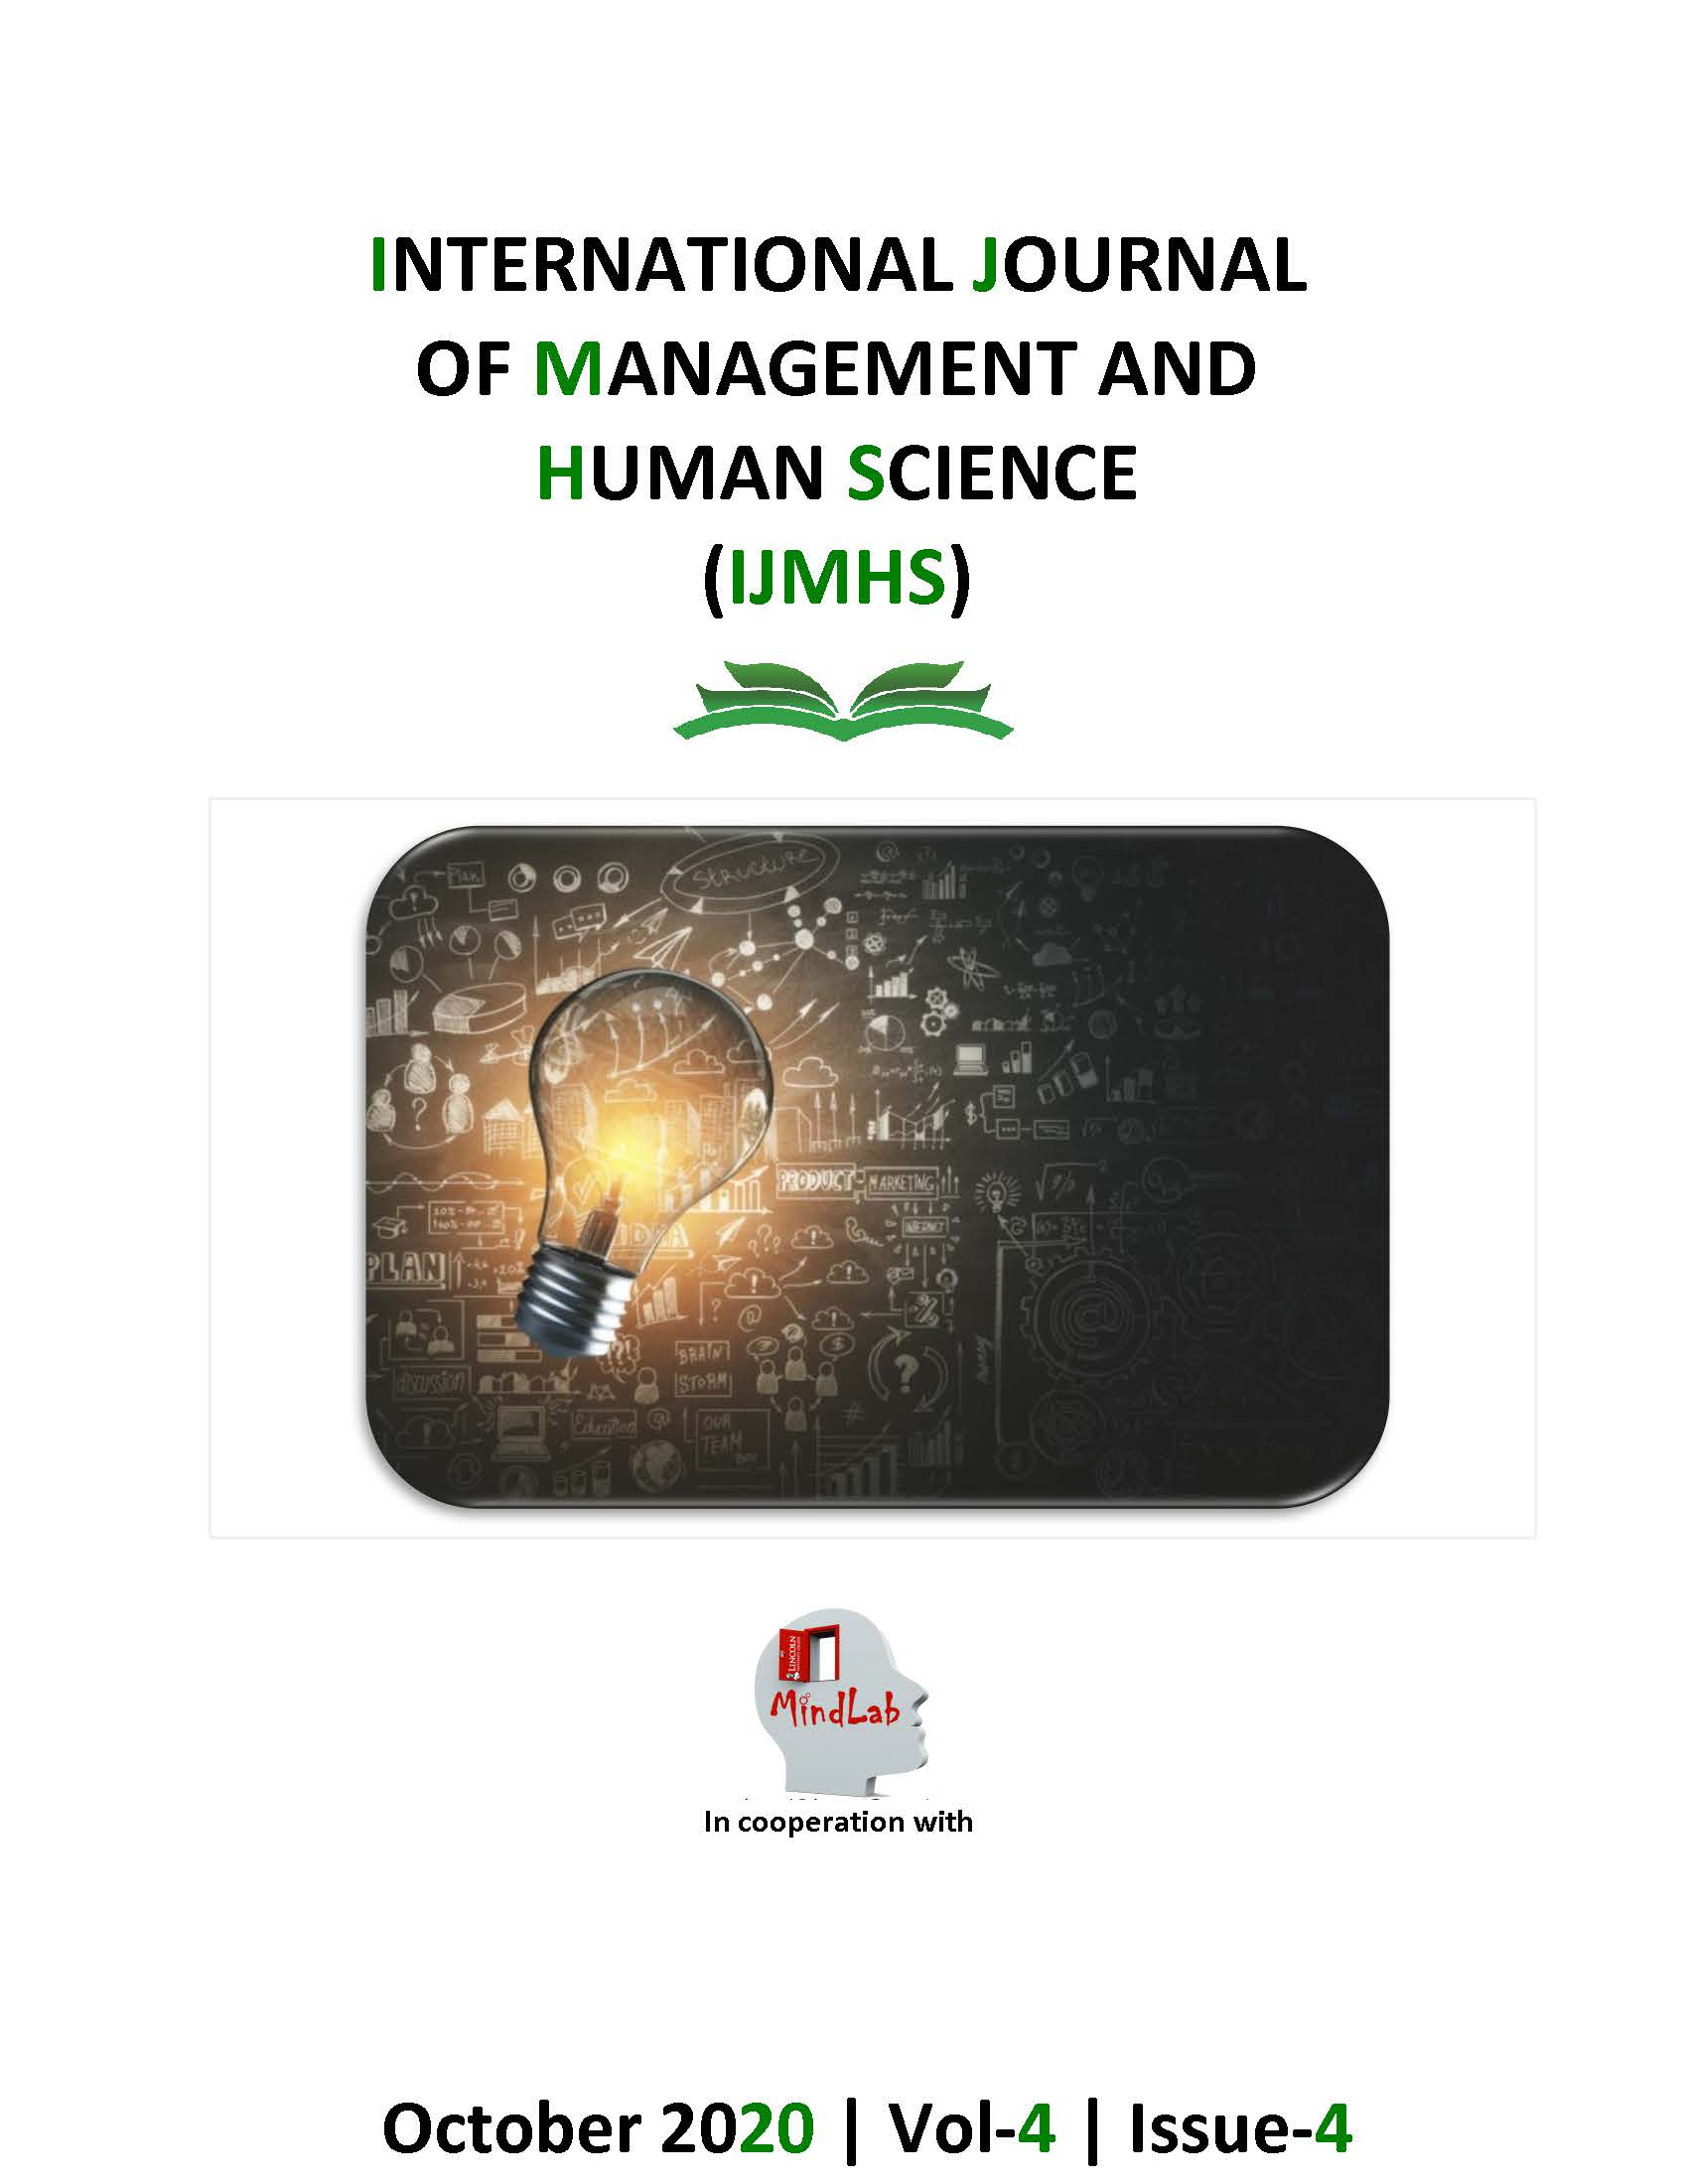 View Vol. 4 No. 4 (2020): International Journal of Management and Human Sciences (IJMHS)